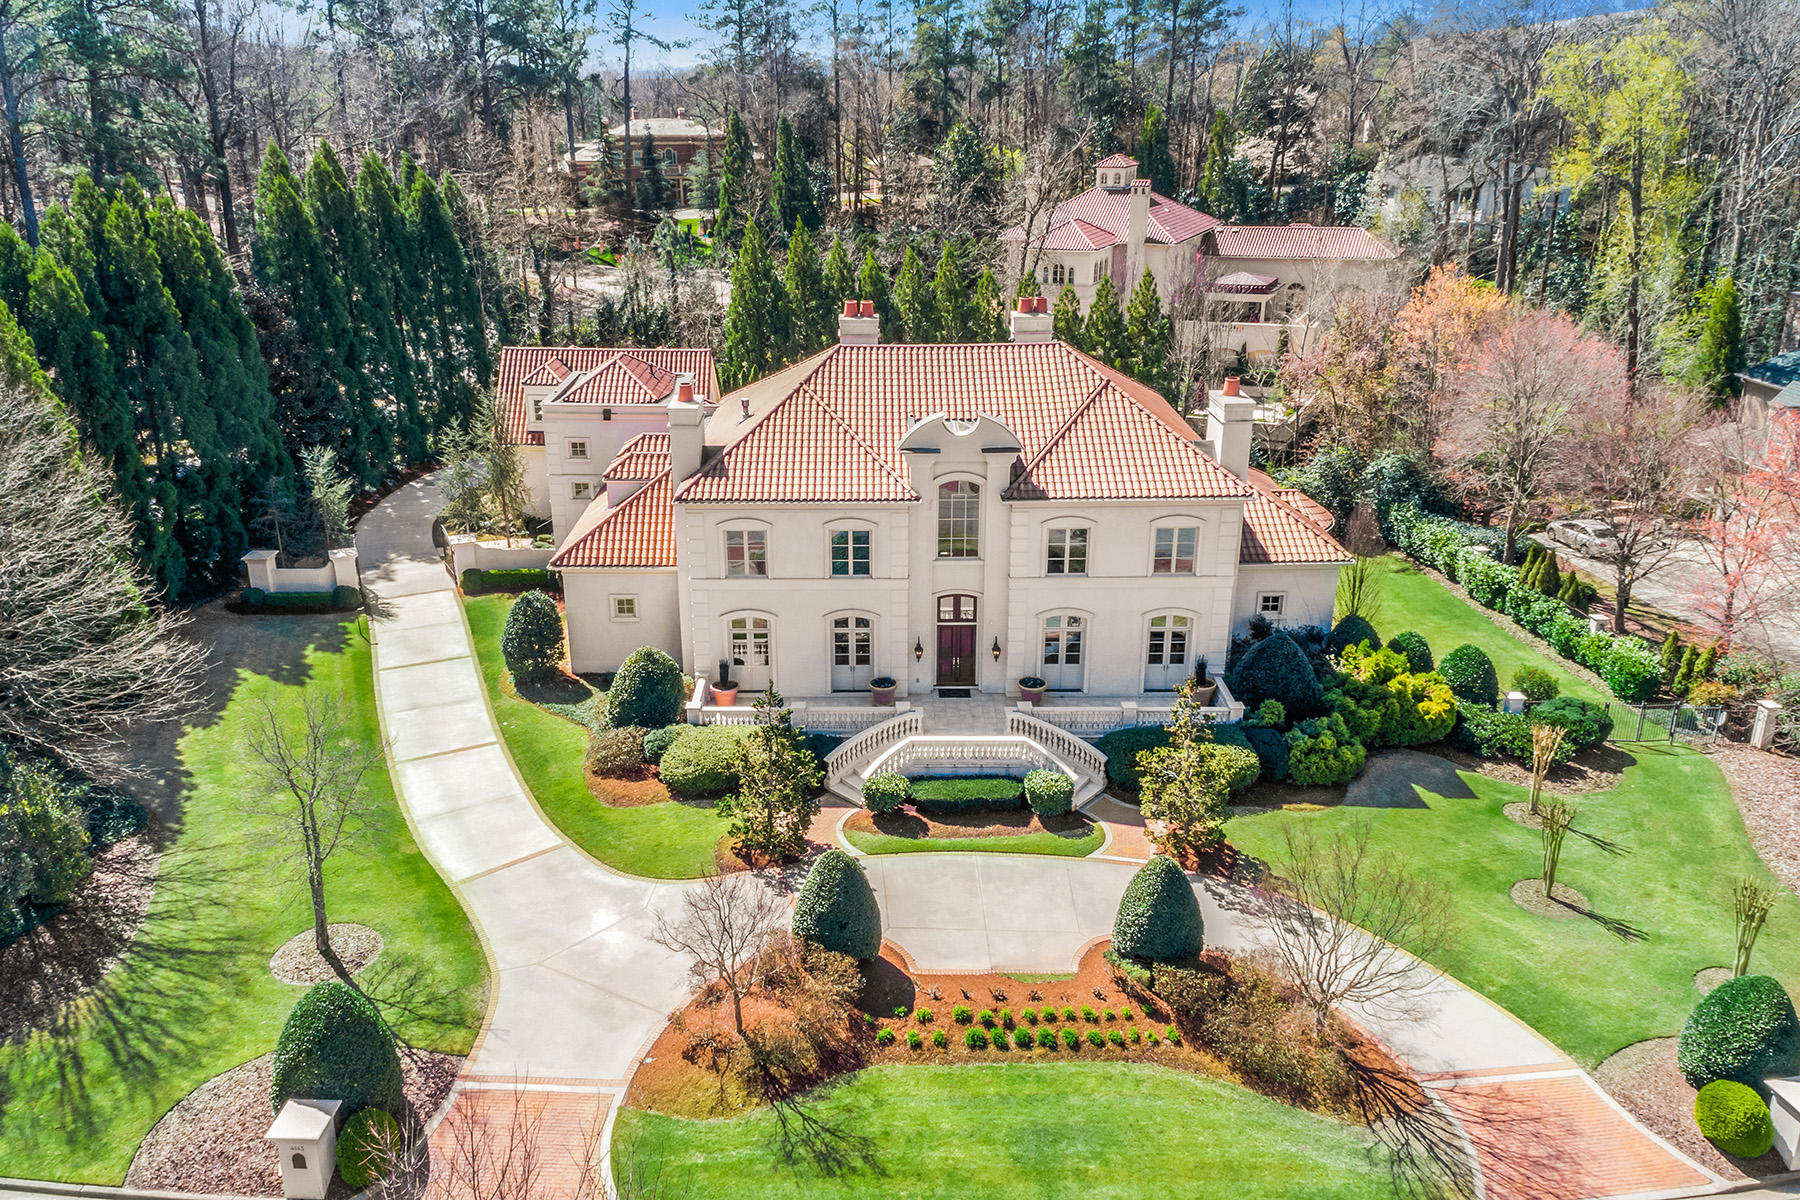 Casa Unifamiliar por un Venta en Gorgeous European-Inspired Buckhead Estate 4143 Randall Ct, Buckhead, Atlanta, Georgia, 30327 Estados Unidos